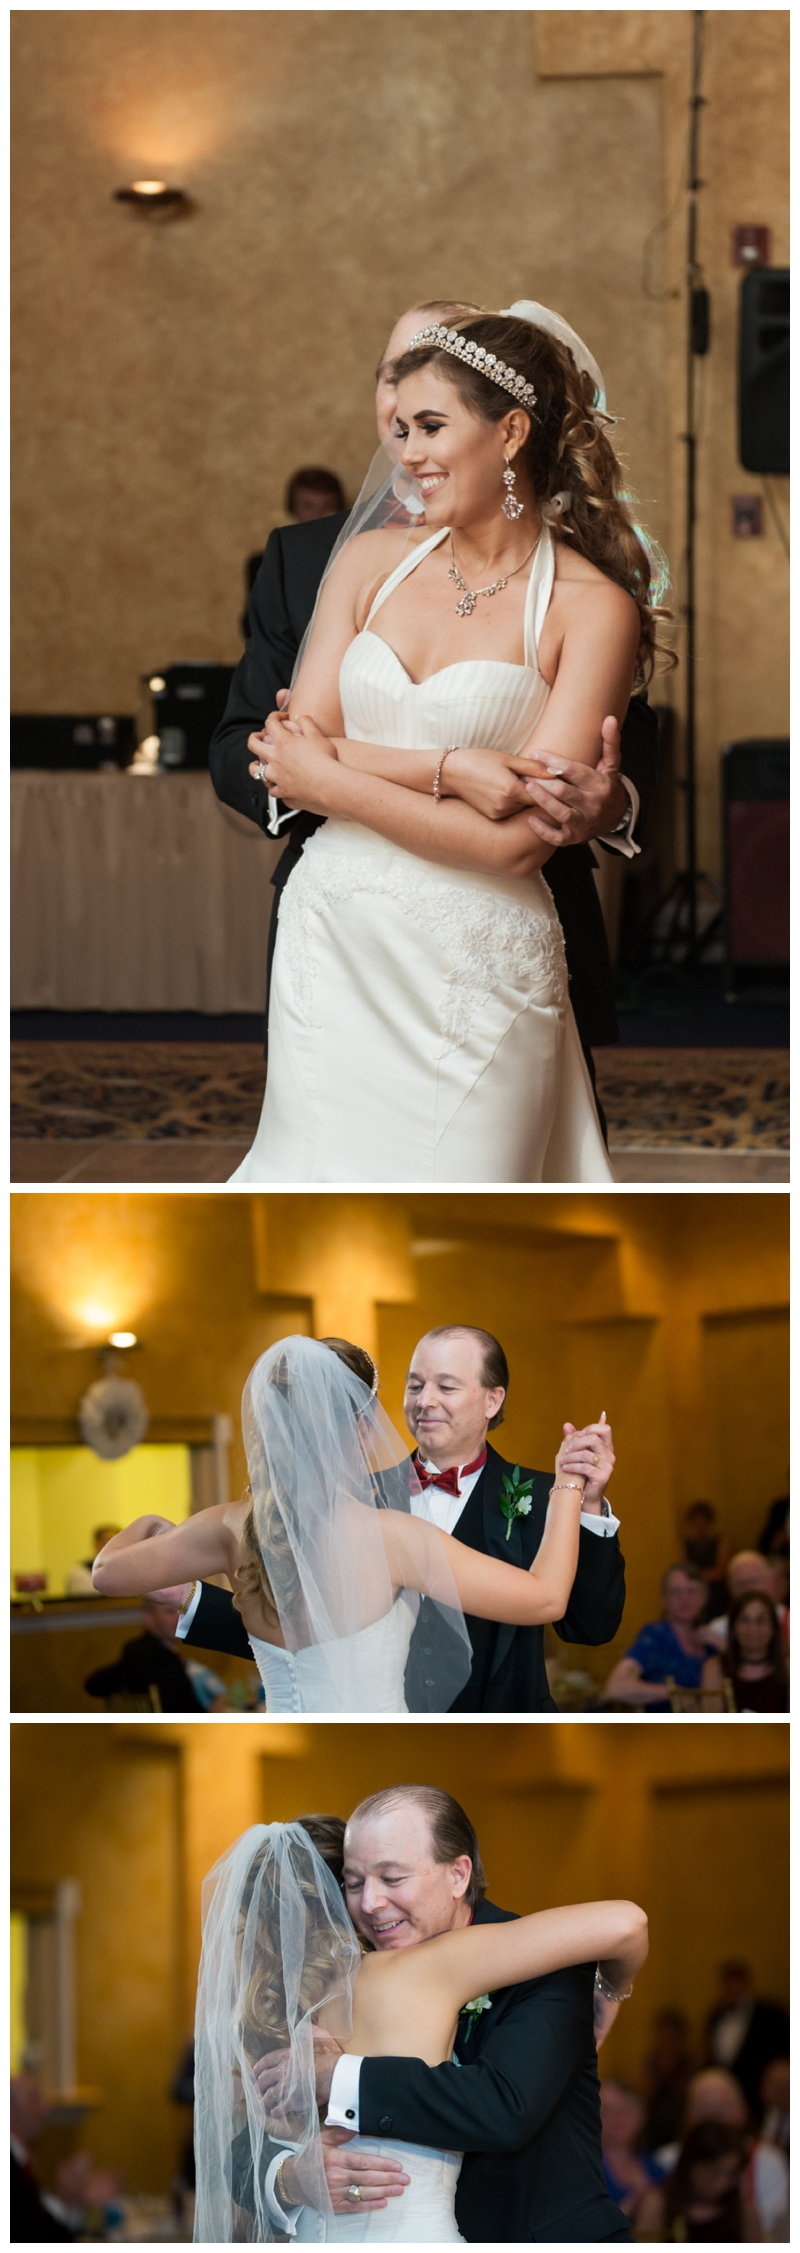 Wedding Reception at Fort Myer Officer's Club by Rachael Foster Photography_0087.jpg